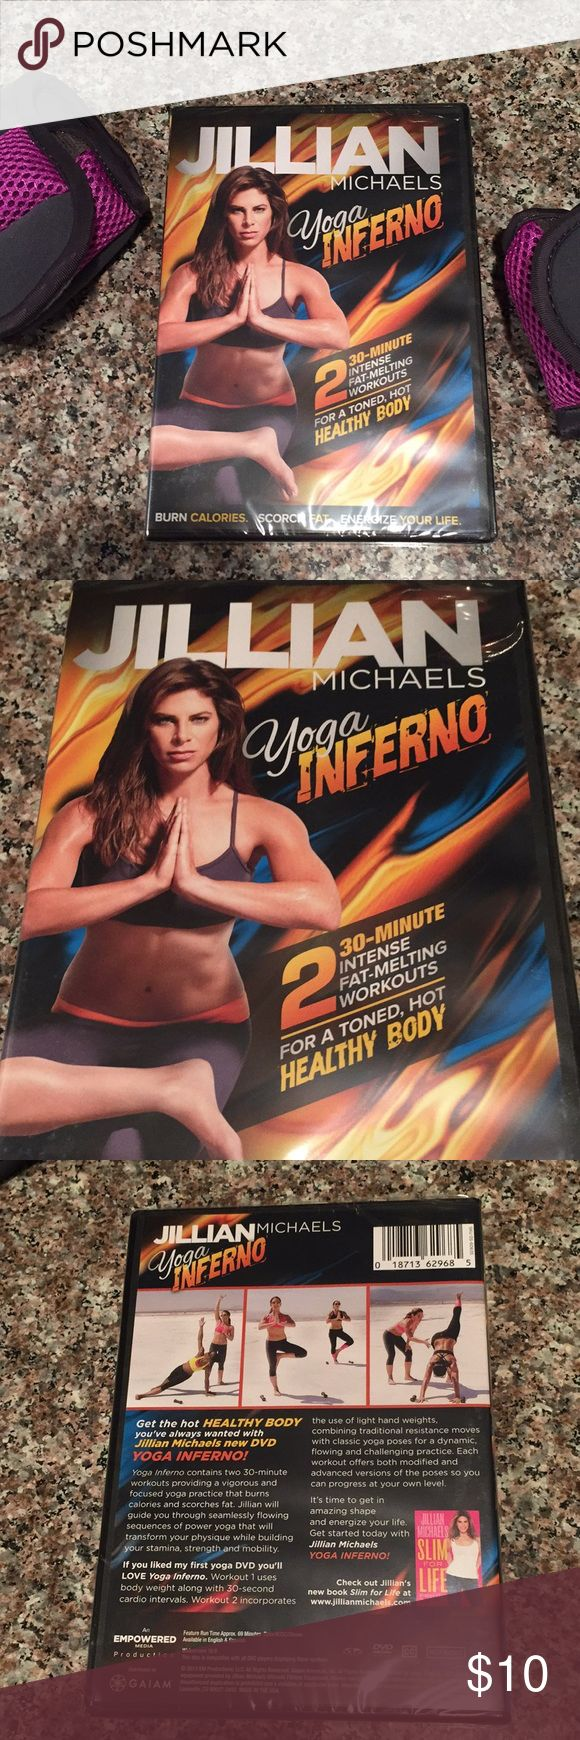 NEW Jillian Michaels YOGA Inferno workout DVD NEW Jillian Michaels YOGA Inferno workout DVD  New, sealed, ready to ship.  Burn calories, scorch fat, energize your life! jillian michaels Accessories